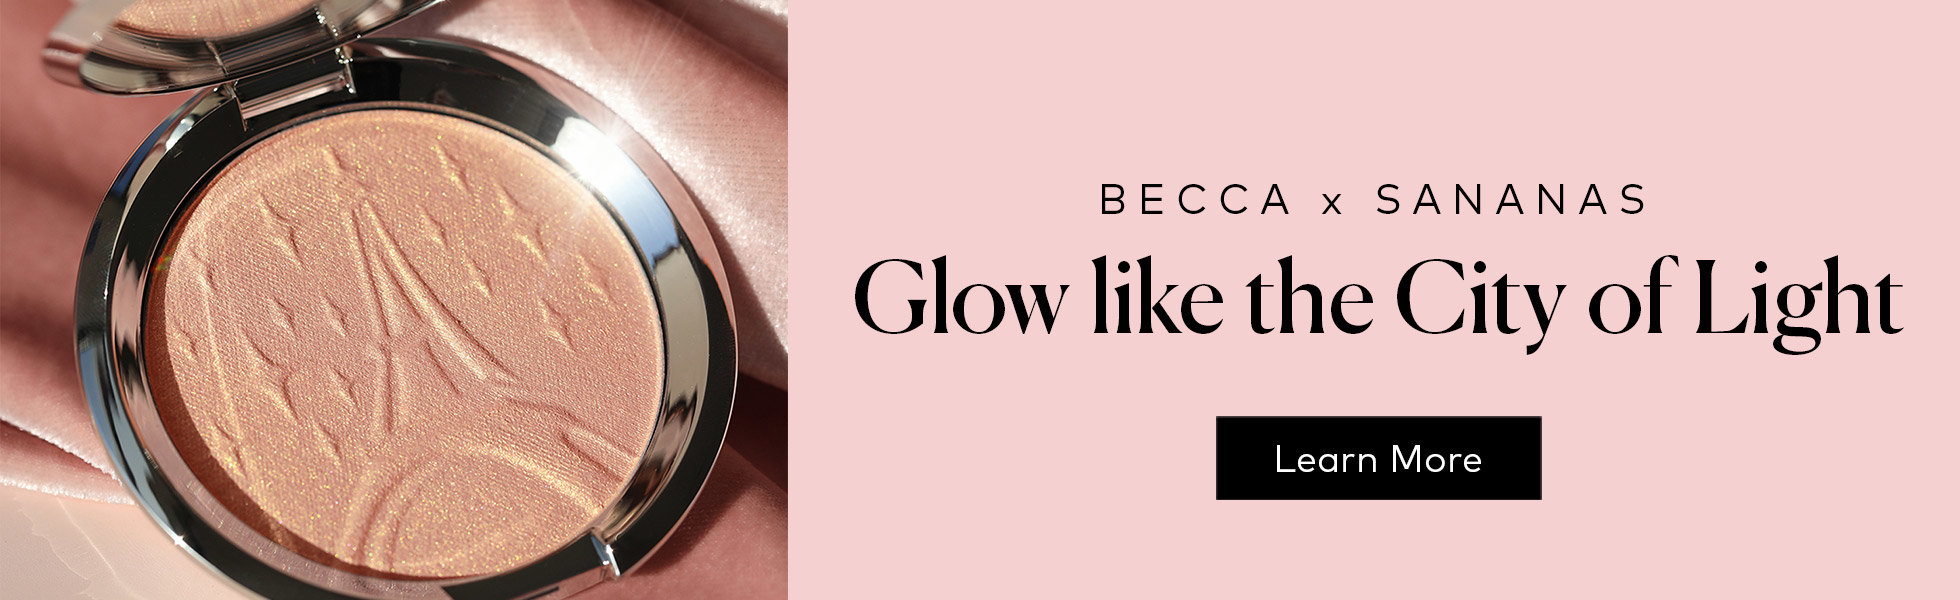 Learn more about #BECCABeauty Sananas and her collaboration with BECCA